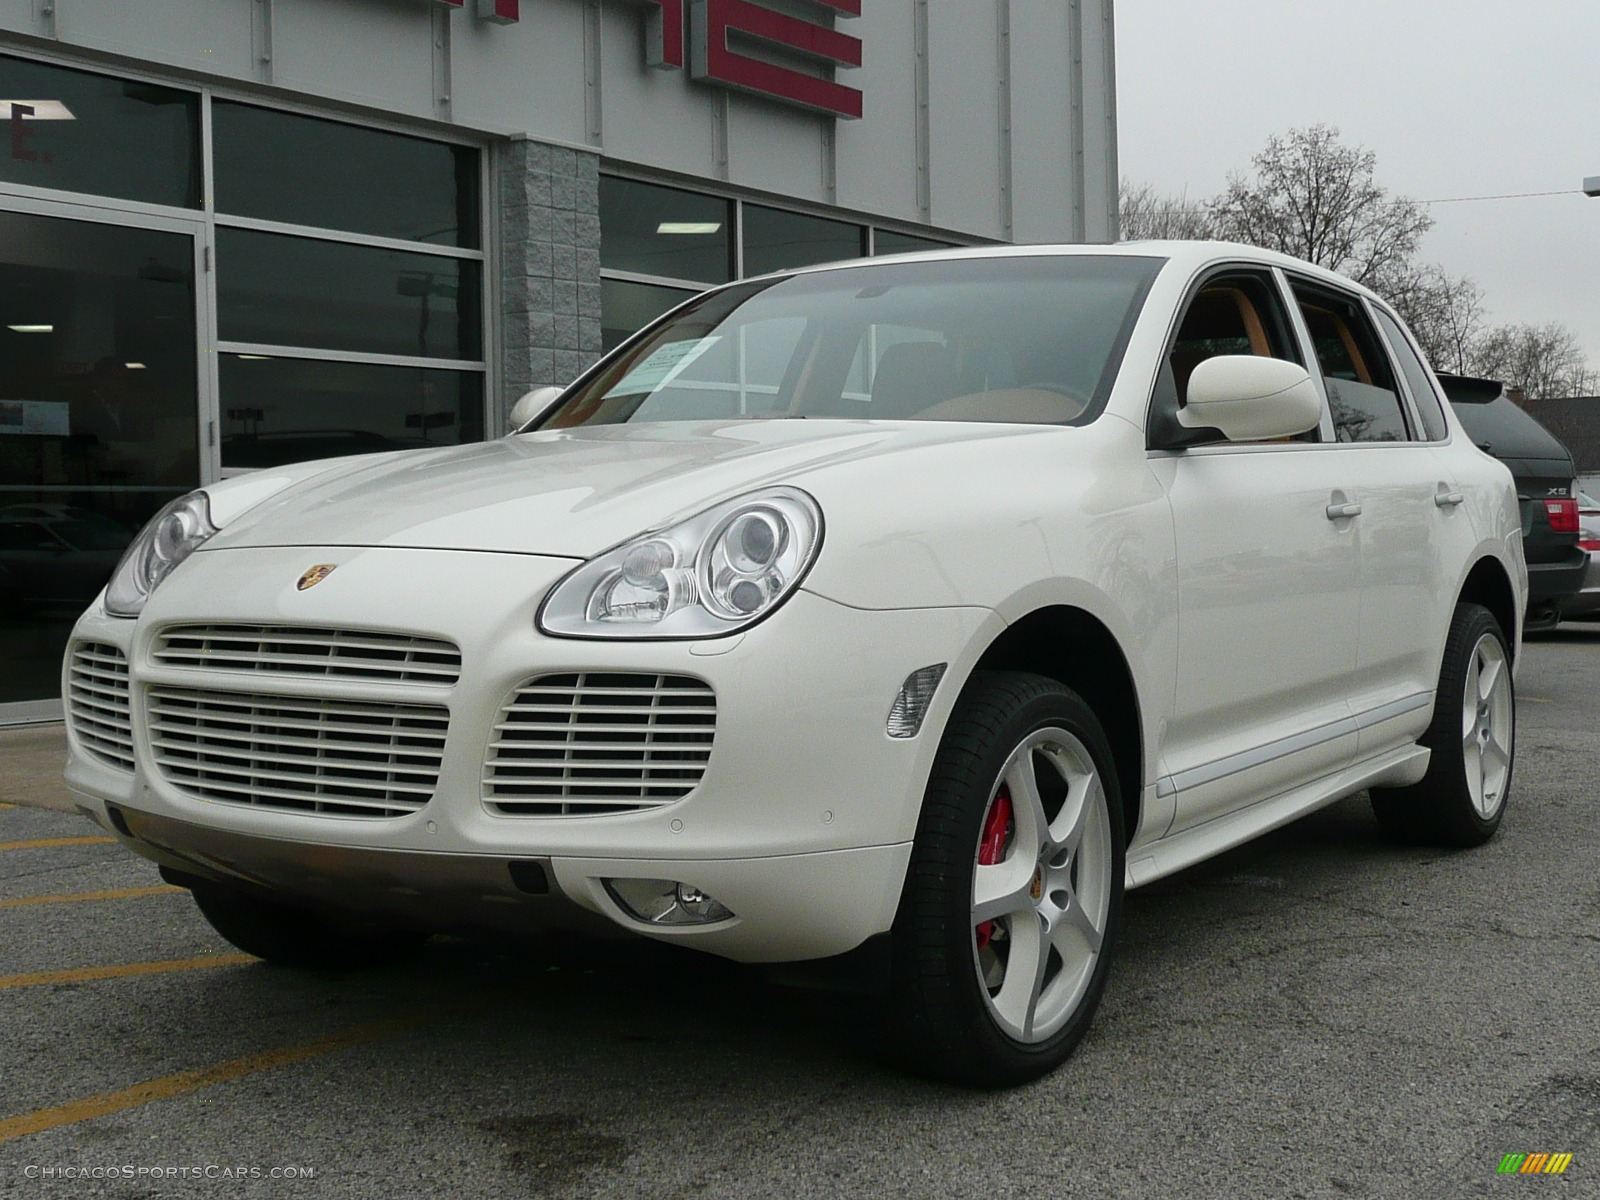 2006 porsche cayenne turbo s in sand white a93215 cars for sale in. Black Bedroom Furniture Sets. Home Design Ideas